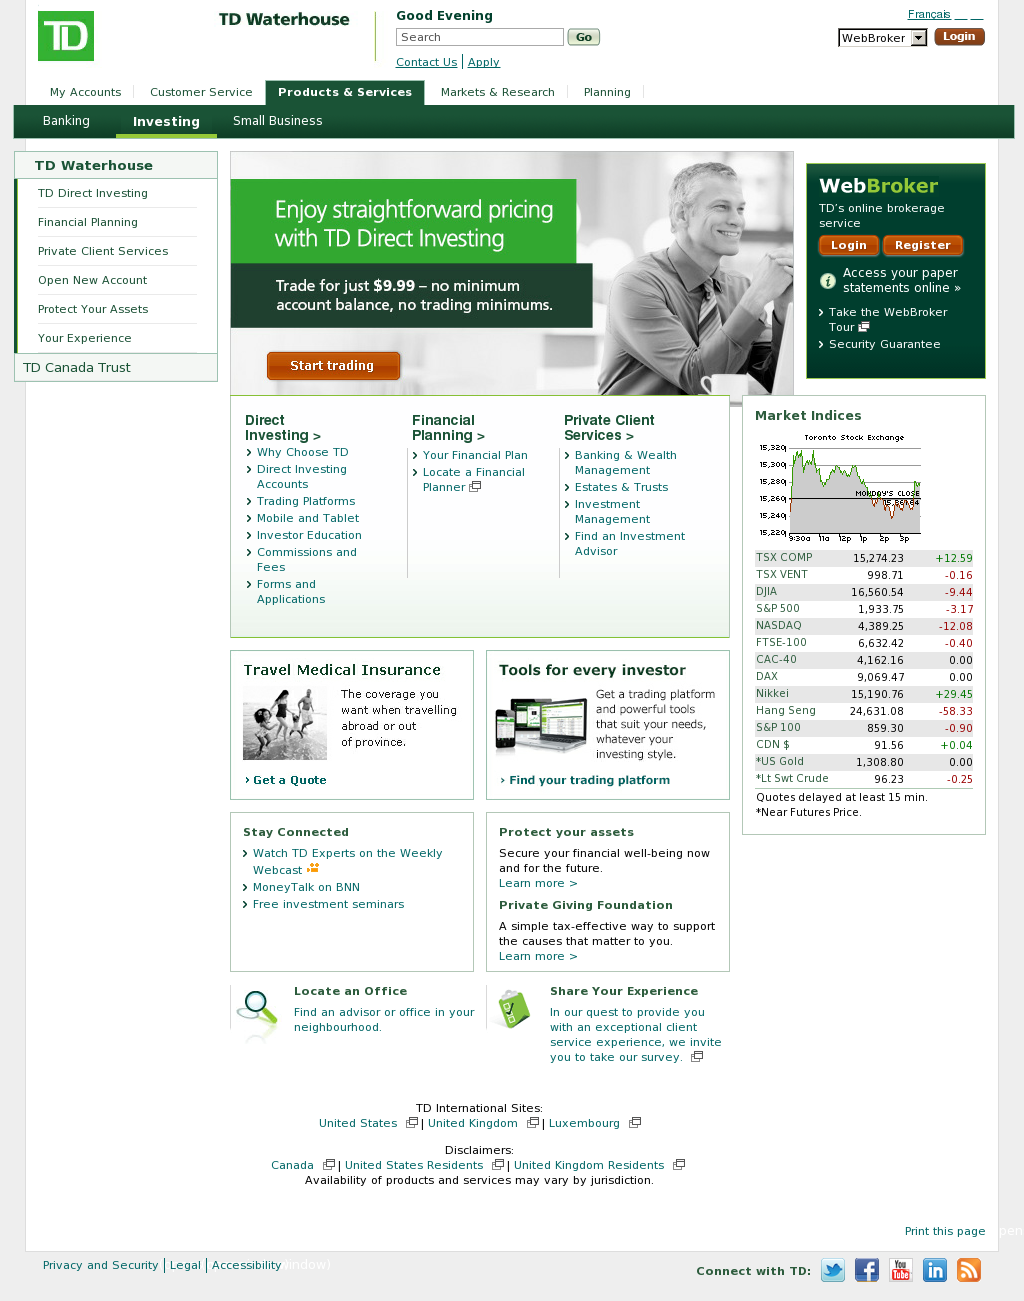 TD Waterhouse Competitors, Revenue and Employees - Owler